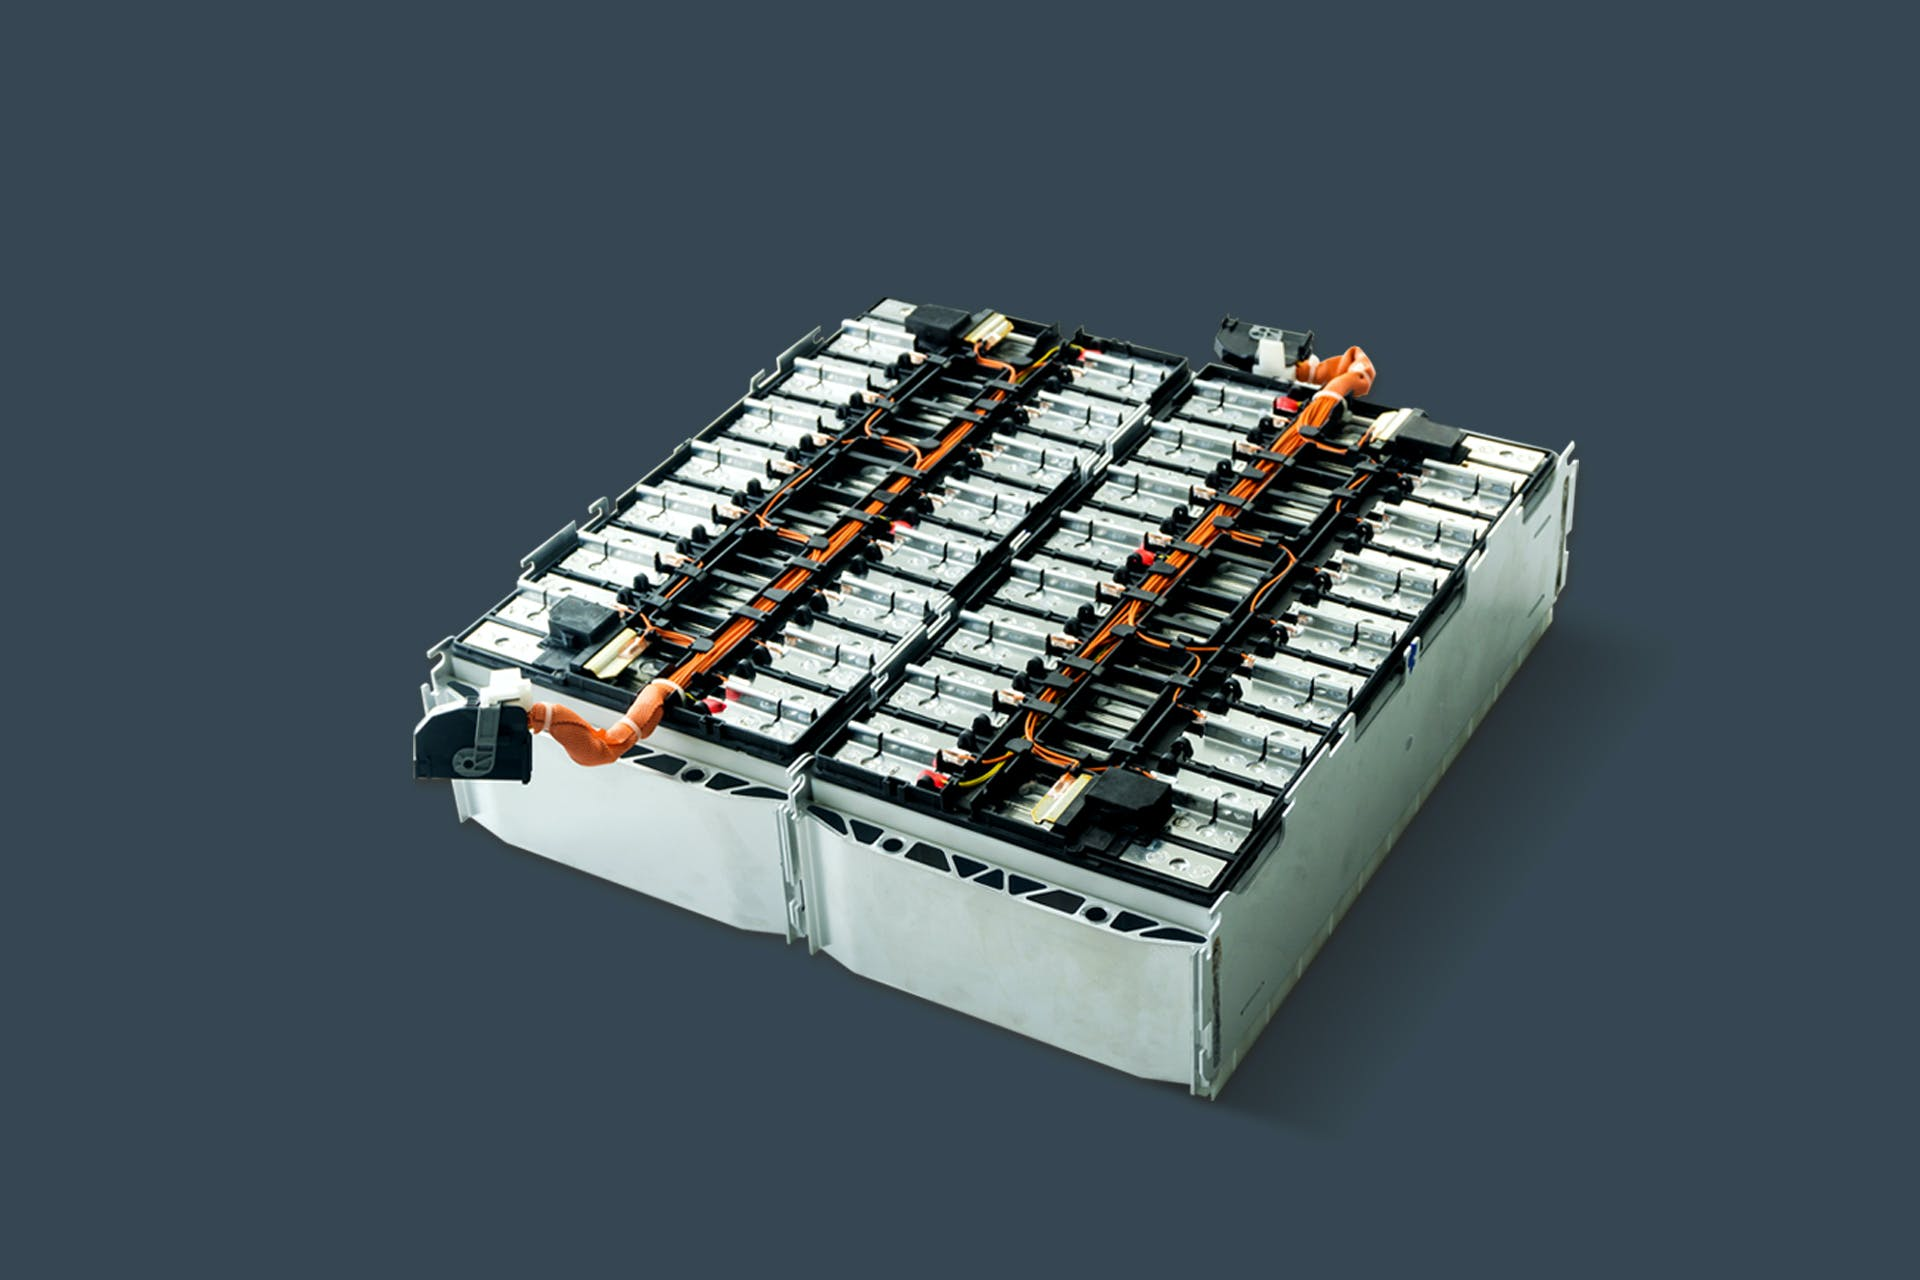 A battery box for electric vehicles on a grey background.